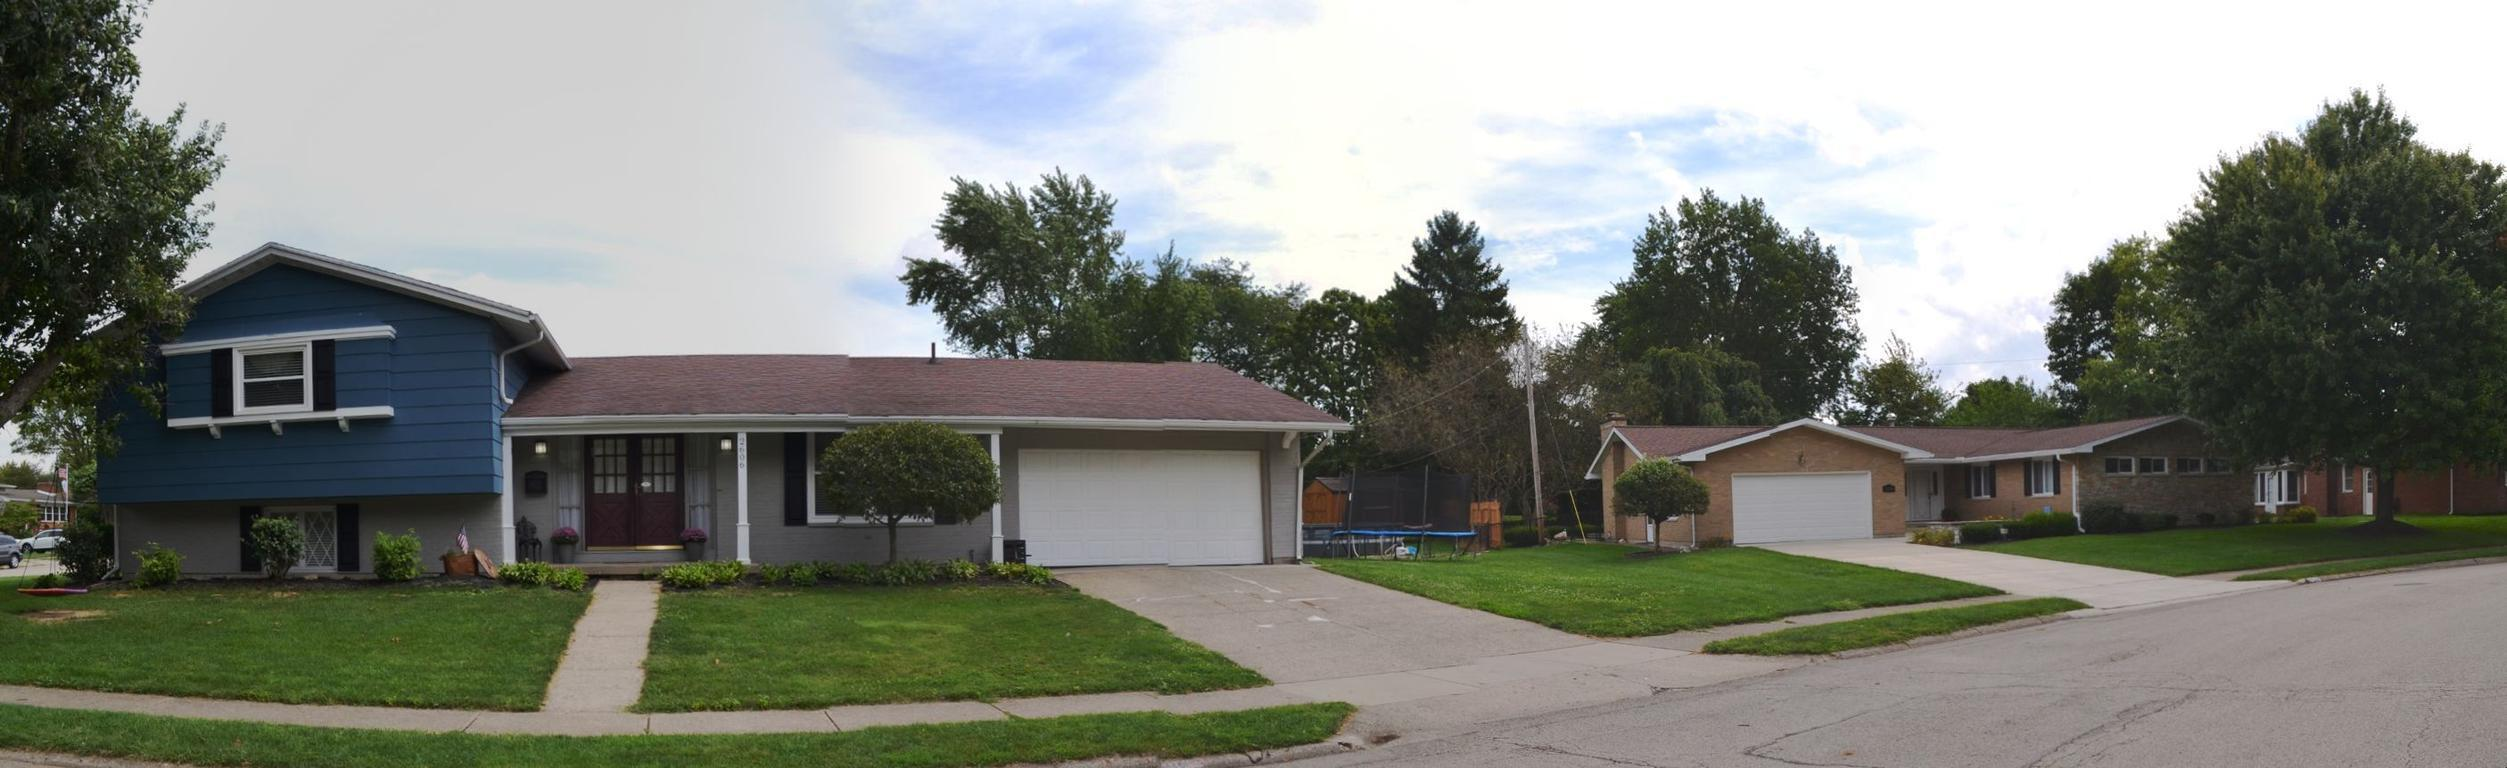 Photo 2 for 2606 Carousel Dr Springfield, OH 45503